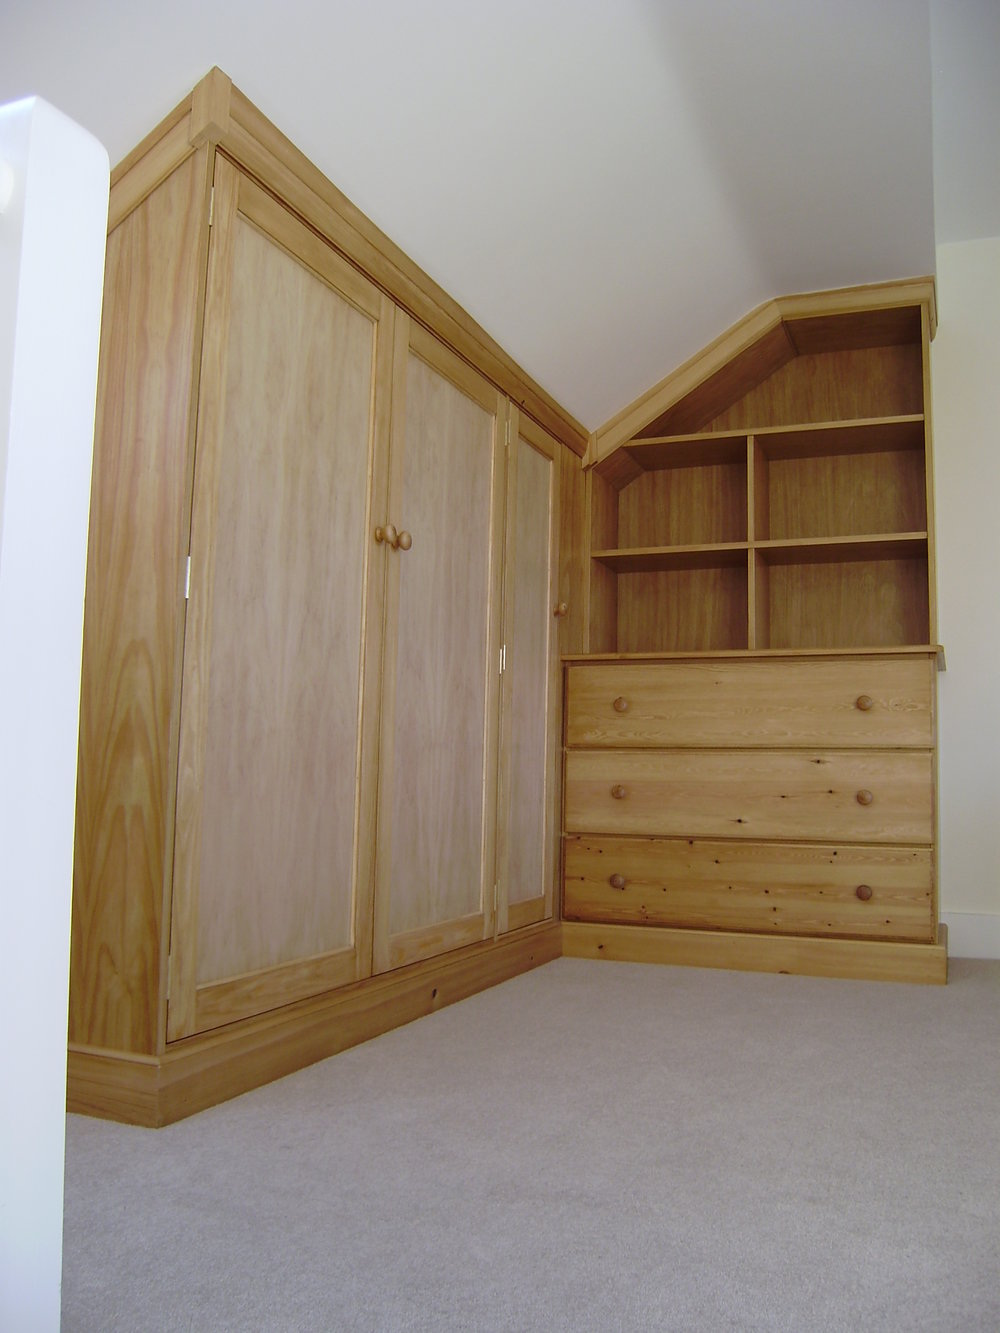 - These wardrobes were fitted in to a loft conversion. Made from pine, they matched existing furniture that my client already owned.